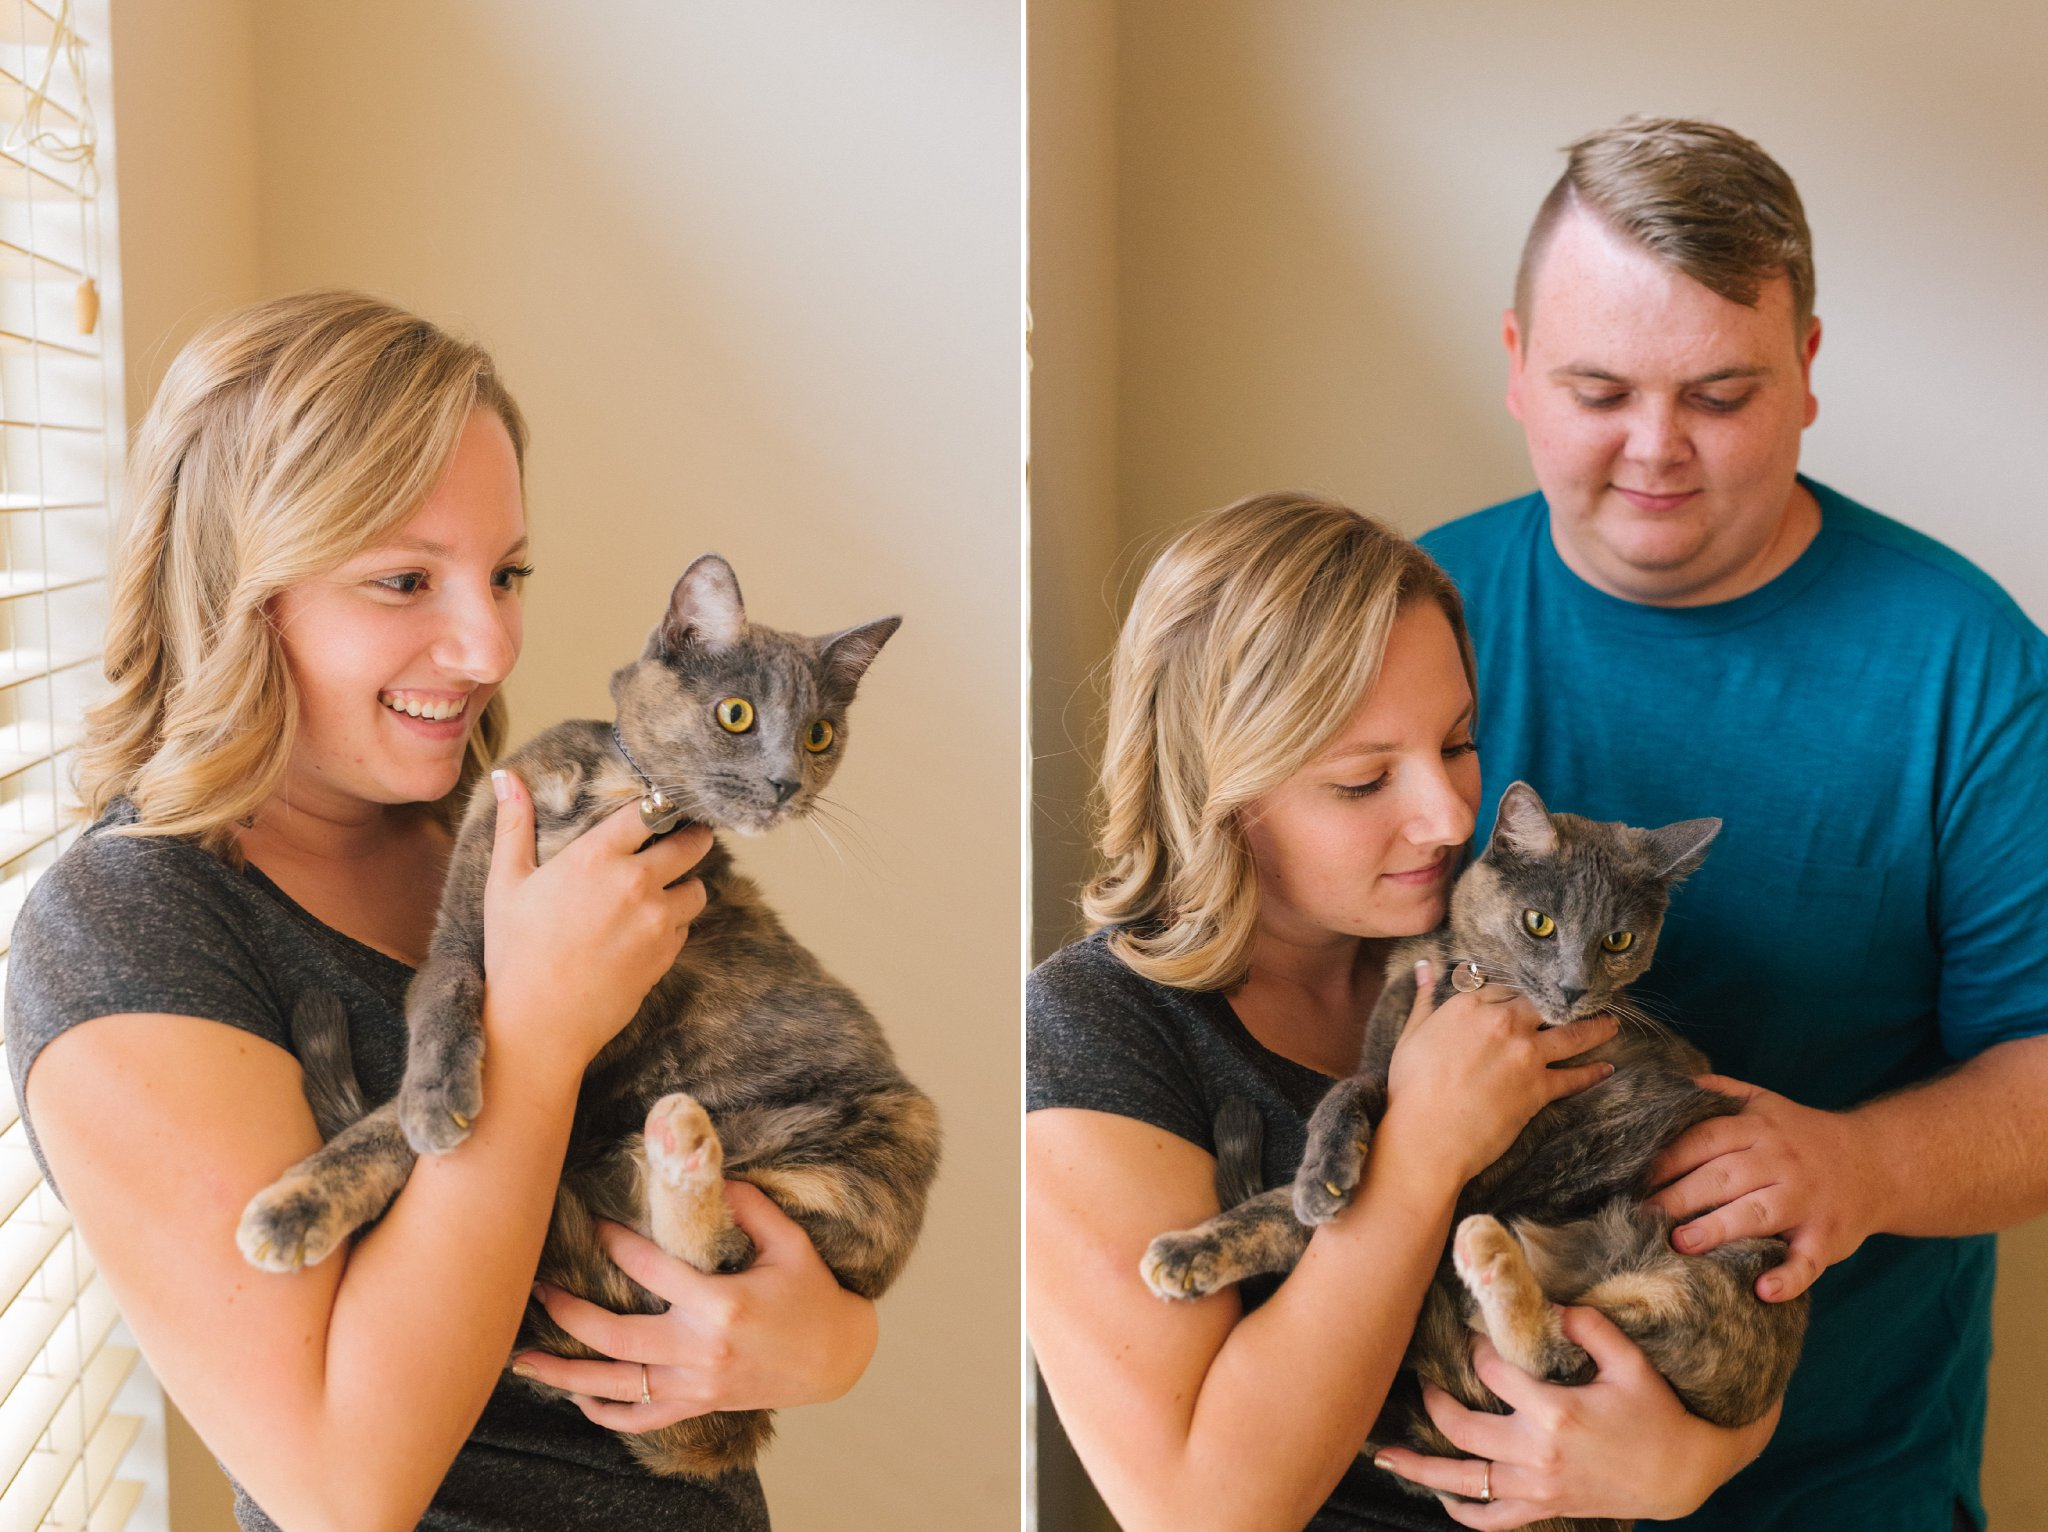 engagement photos in apartment in Tempe with cat